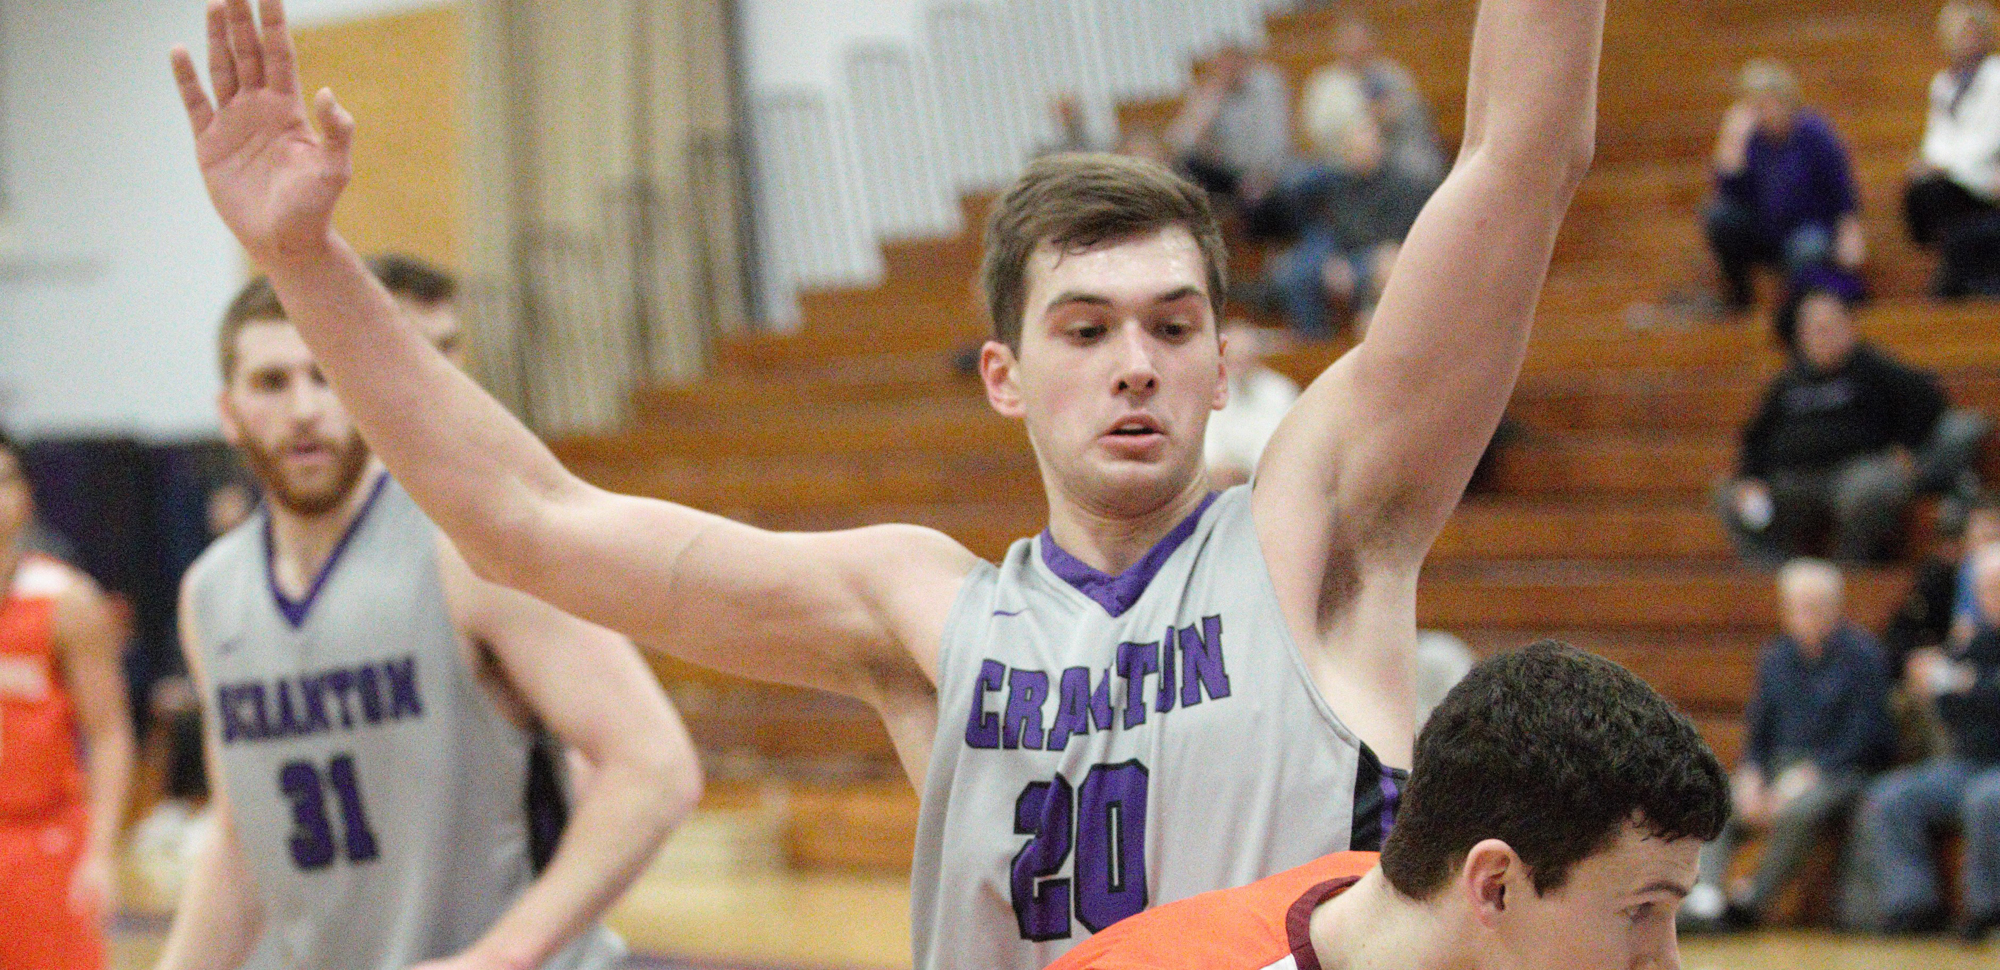 Matthew Mancuso scored 20 points and pulled down 13 rebounds to lead Scranton past Stevenson in Saturday's season opener.